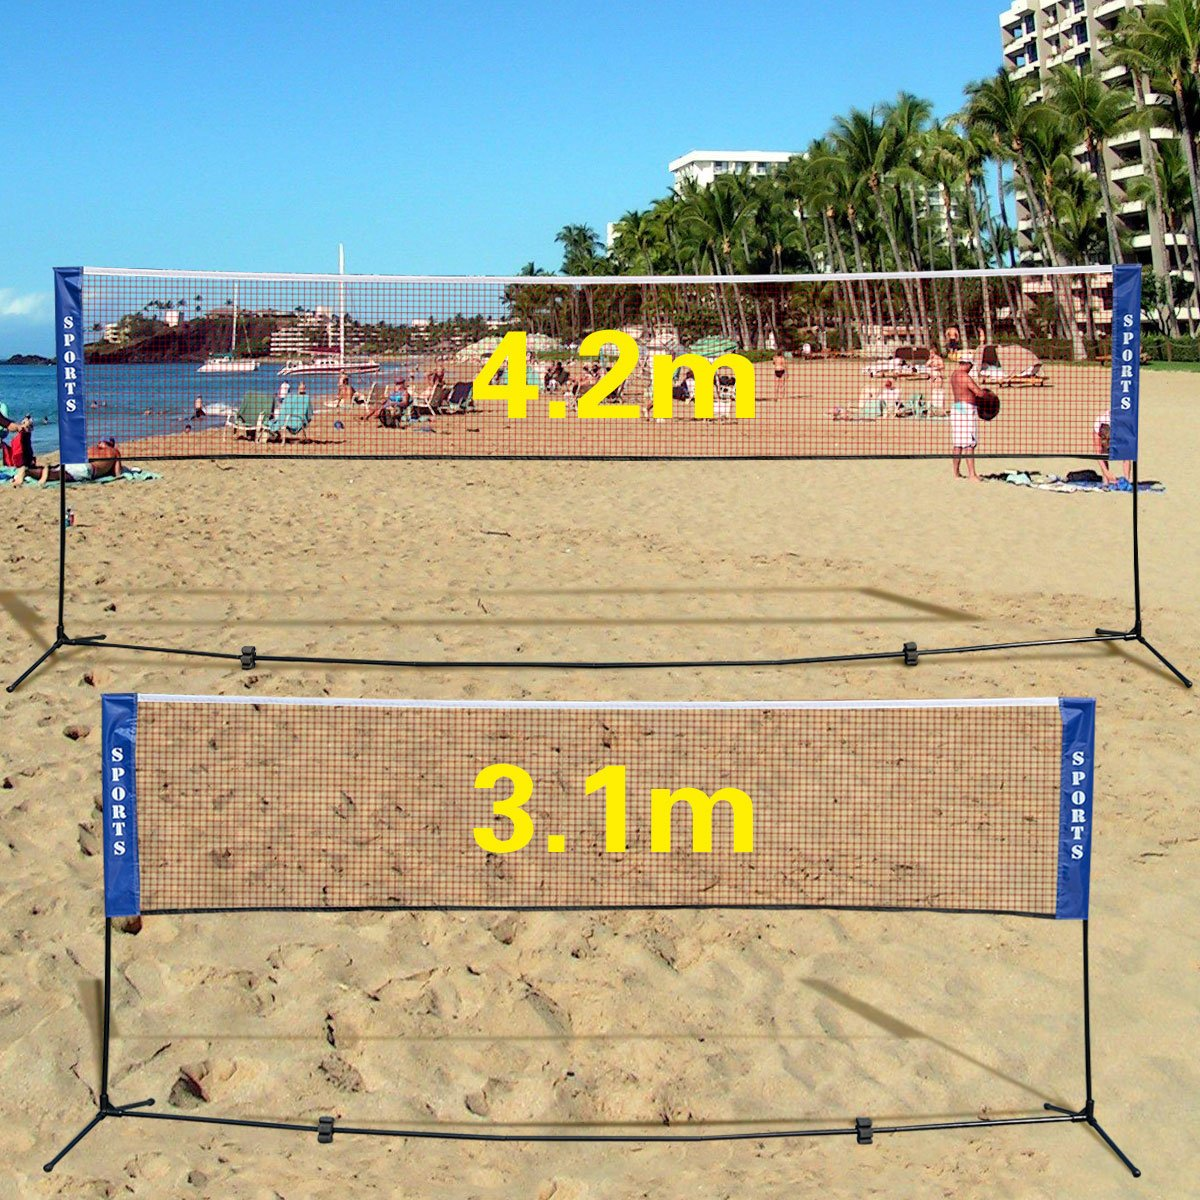 GYMAX 3m/4m Foldable Adjustable Badminton Tennis Volleyball Net W/Free Stand